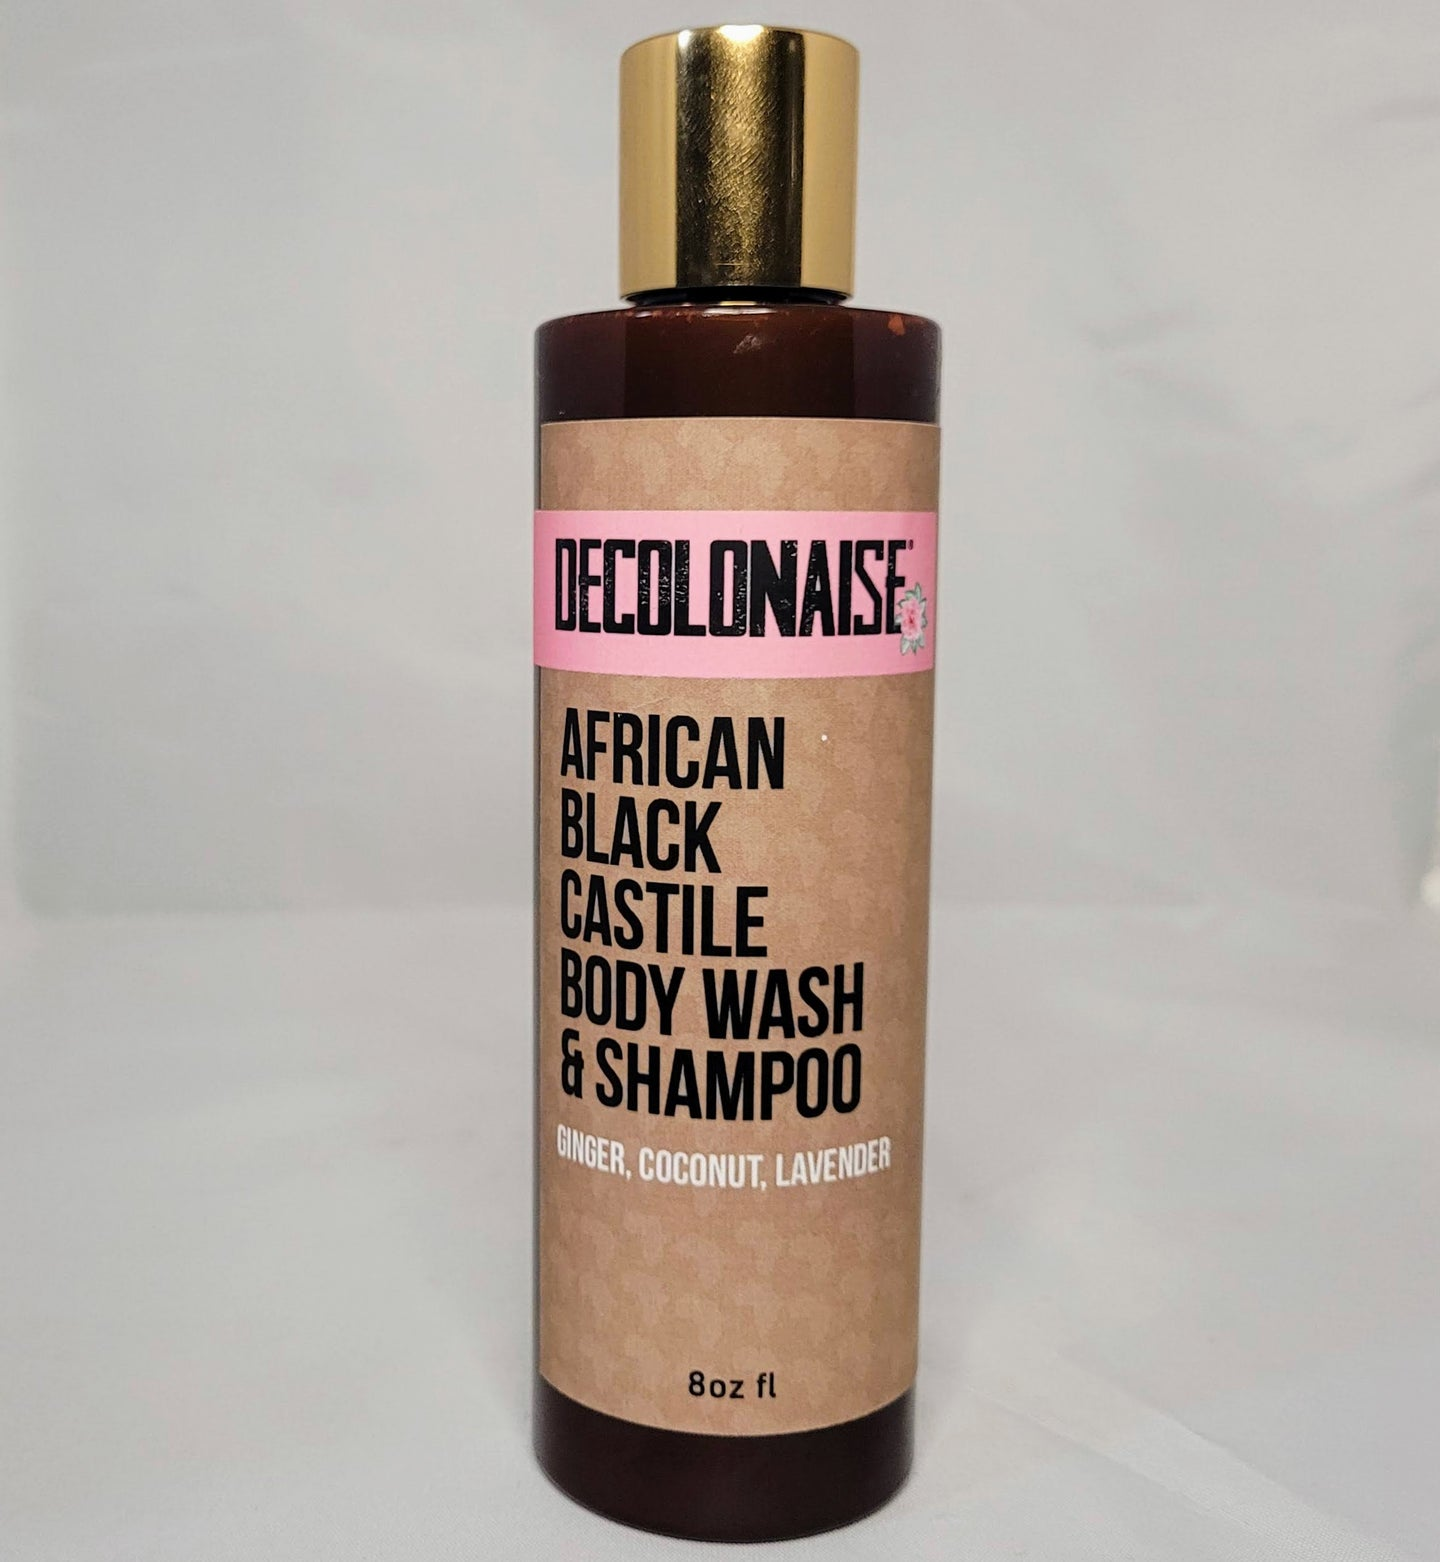 African Black Castile Body Wash and Shampoo